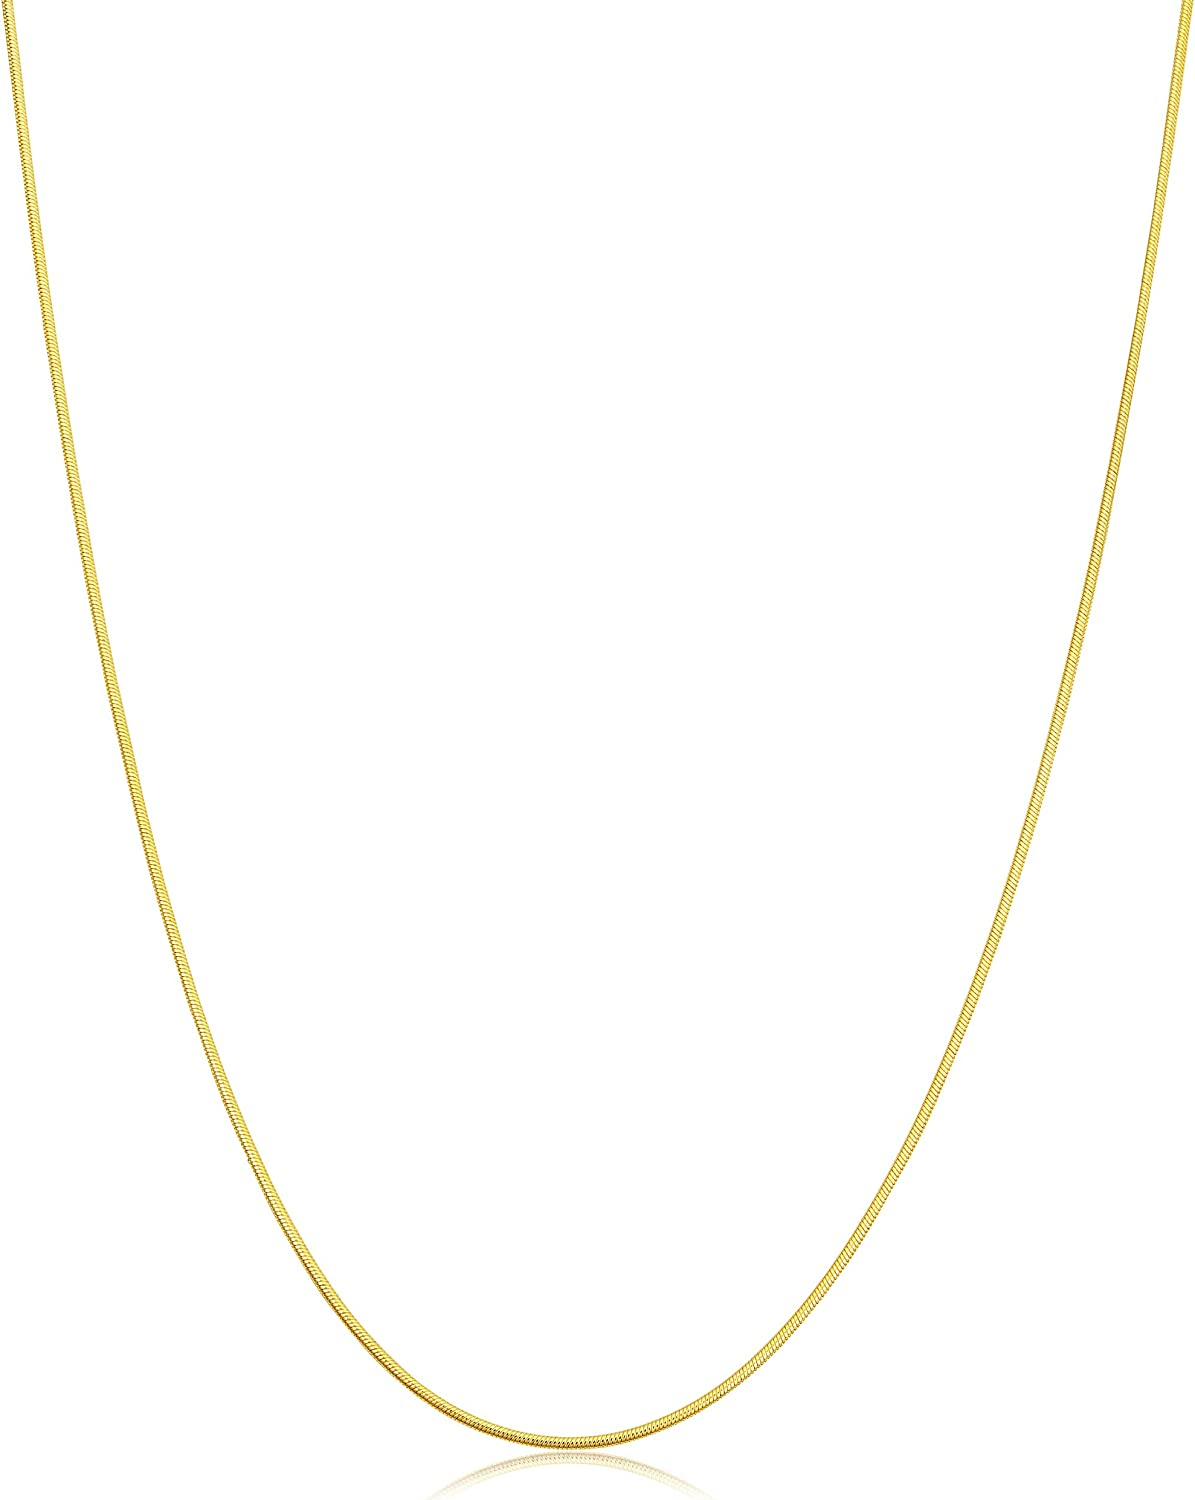 10K Yellow Gold Snake Chain 1mm wide Necklace Lobster Claw Clasp 16 inch